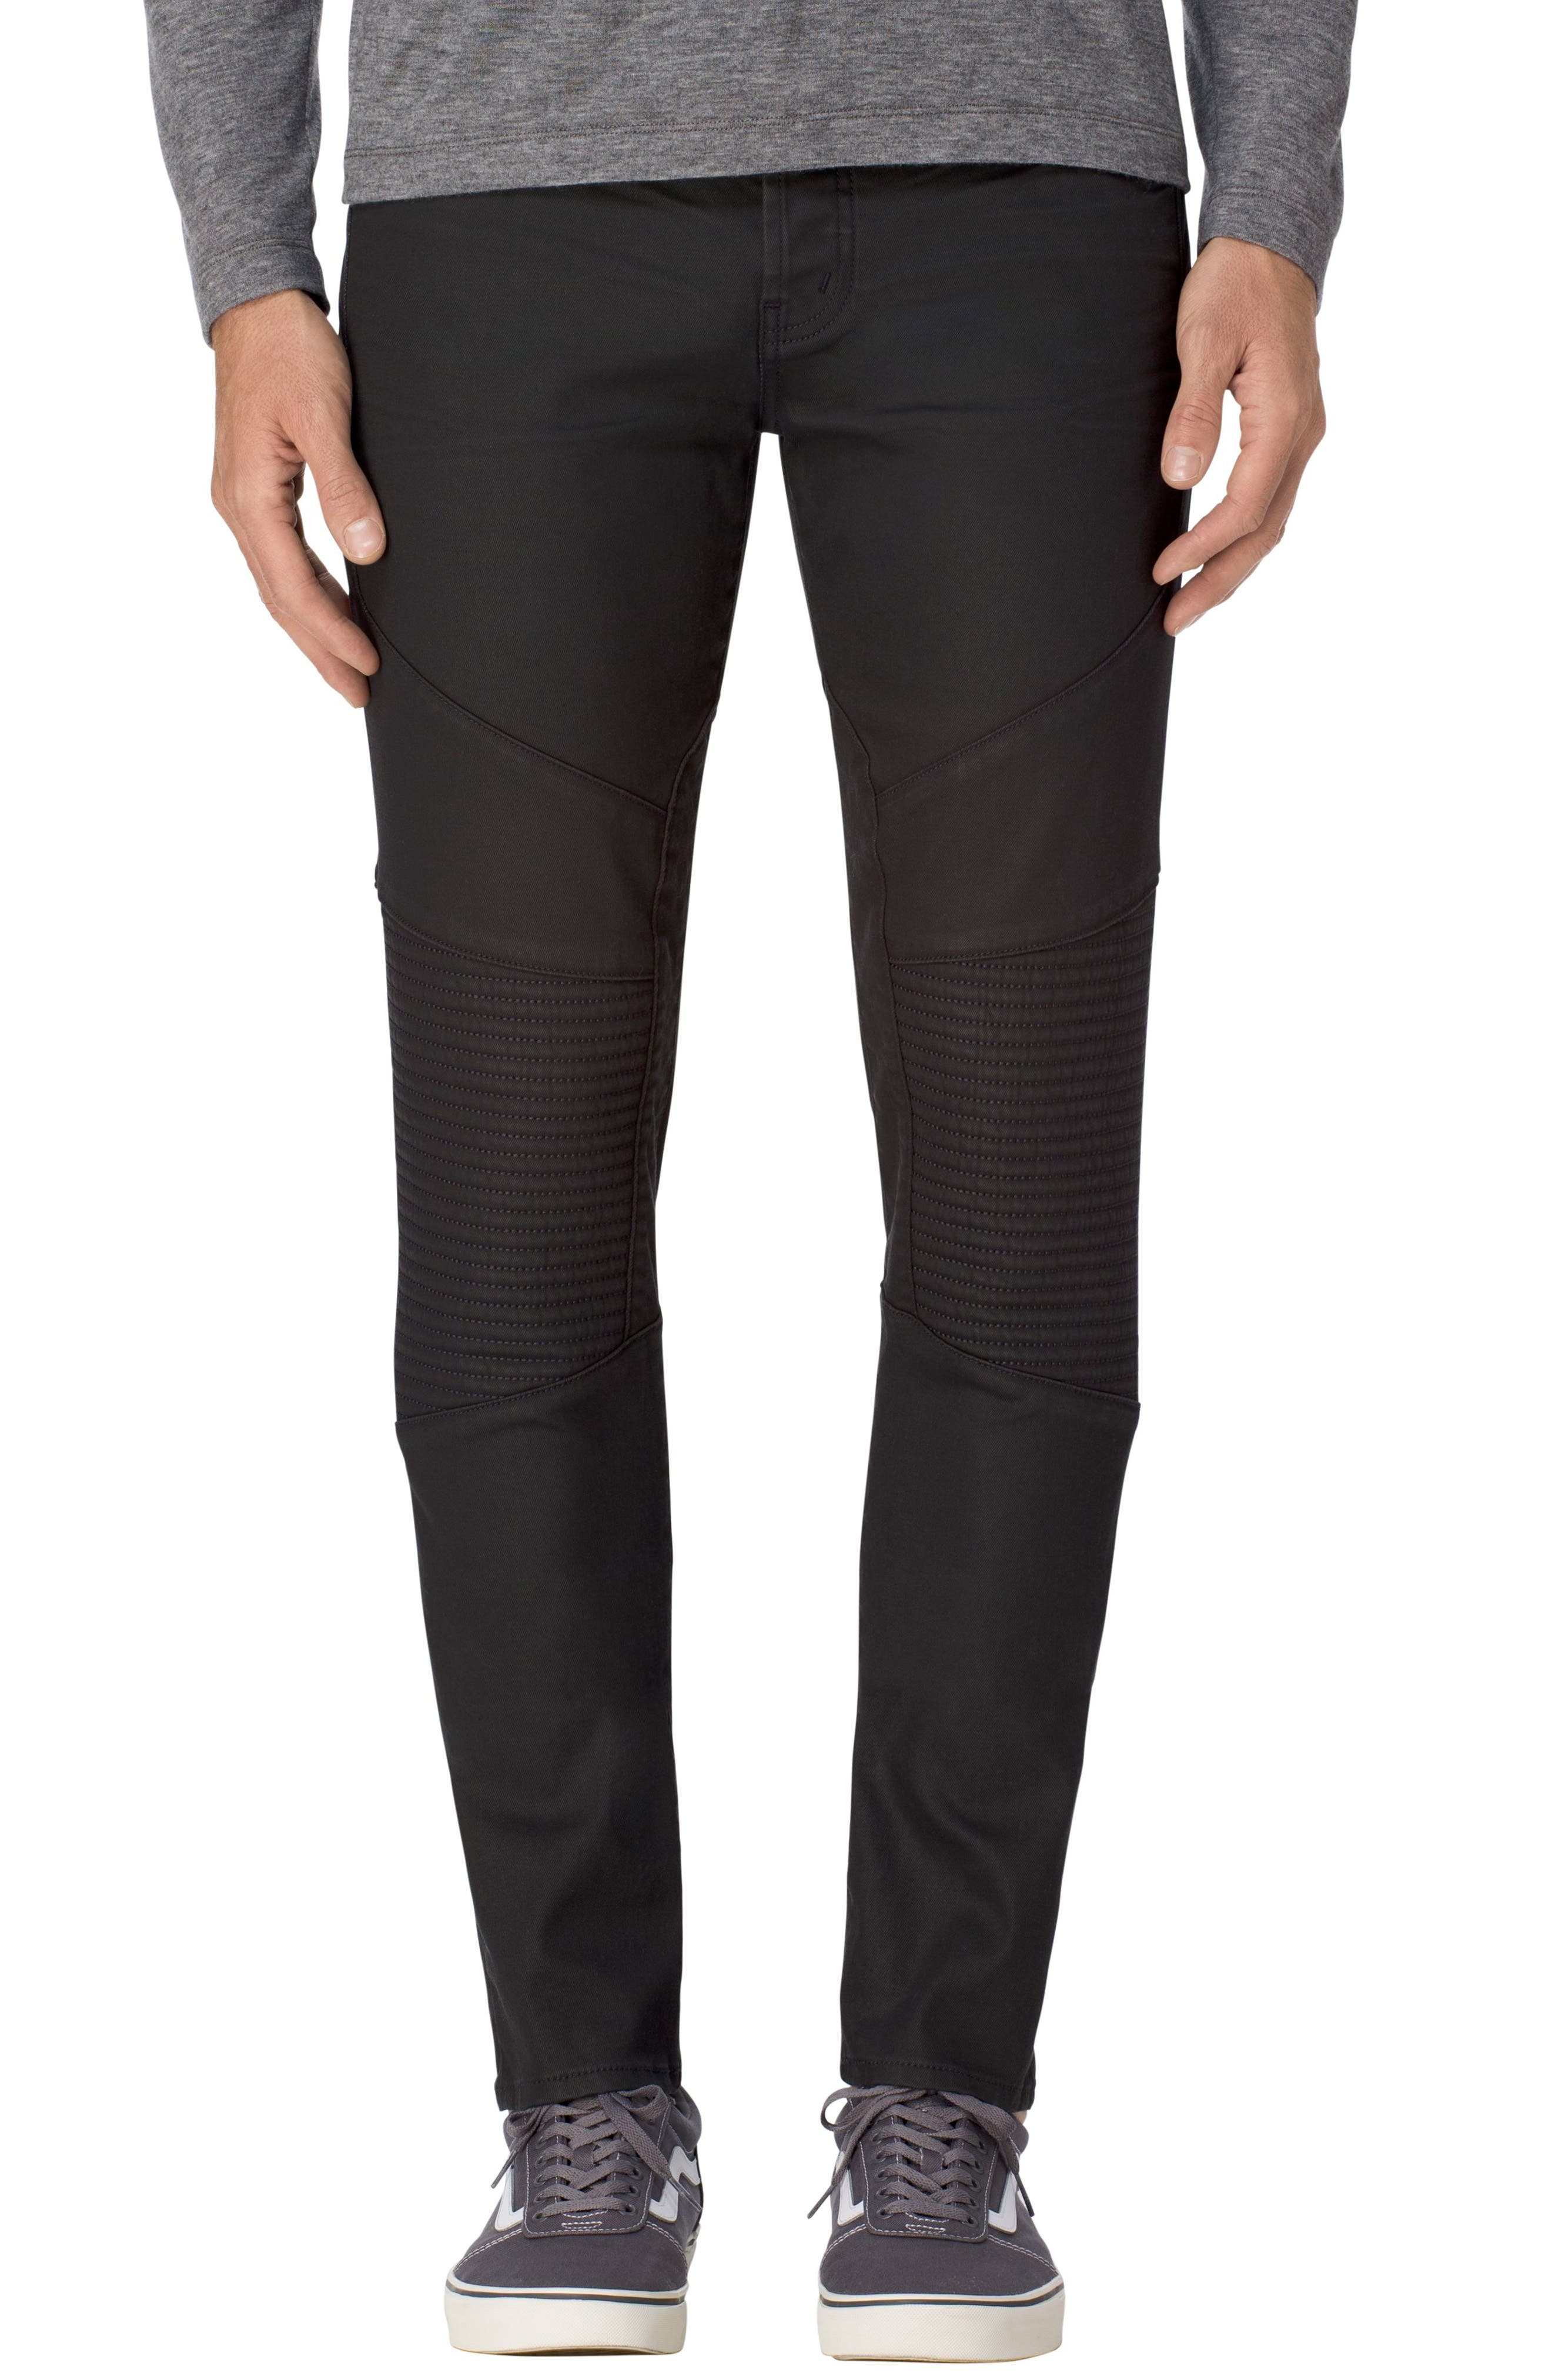 Bearden Moto Skinny Fit Jeans,                         Main,                         color, 001